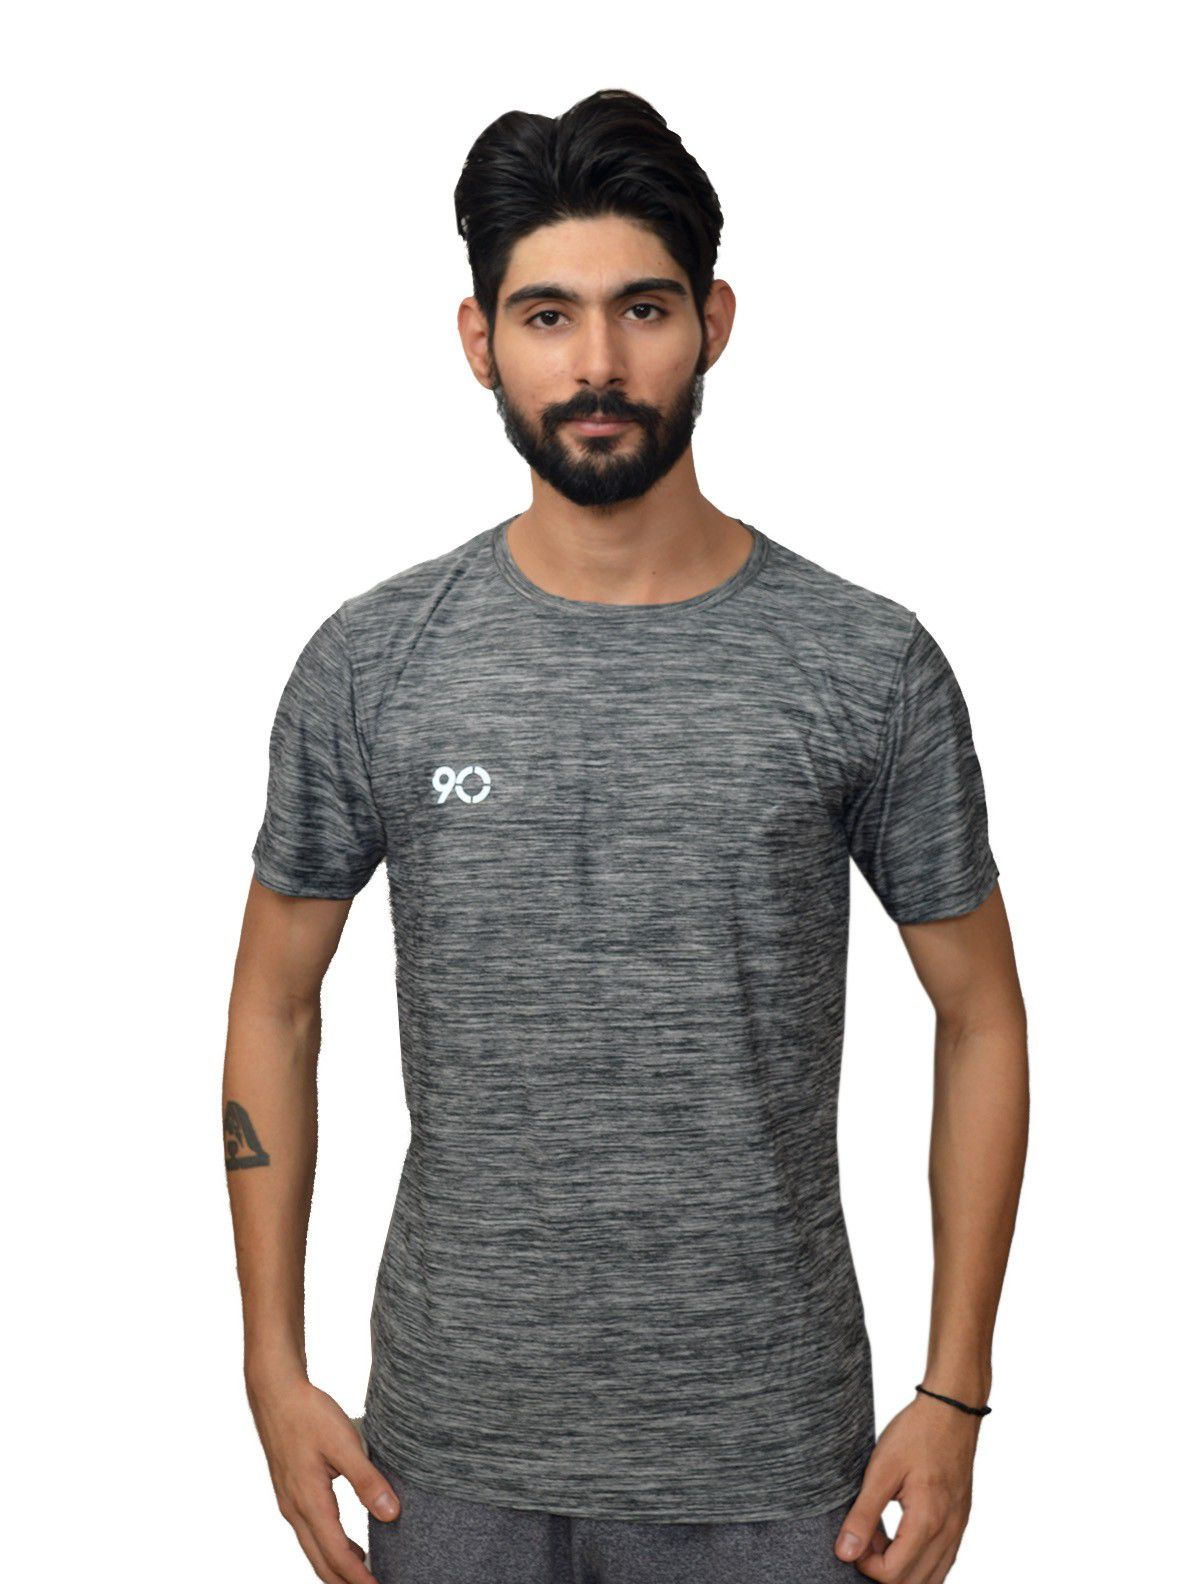 Crux&hunter Black Round T-Shirt